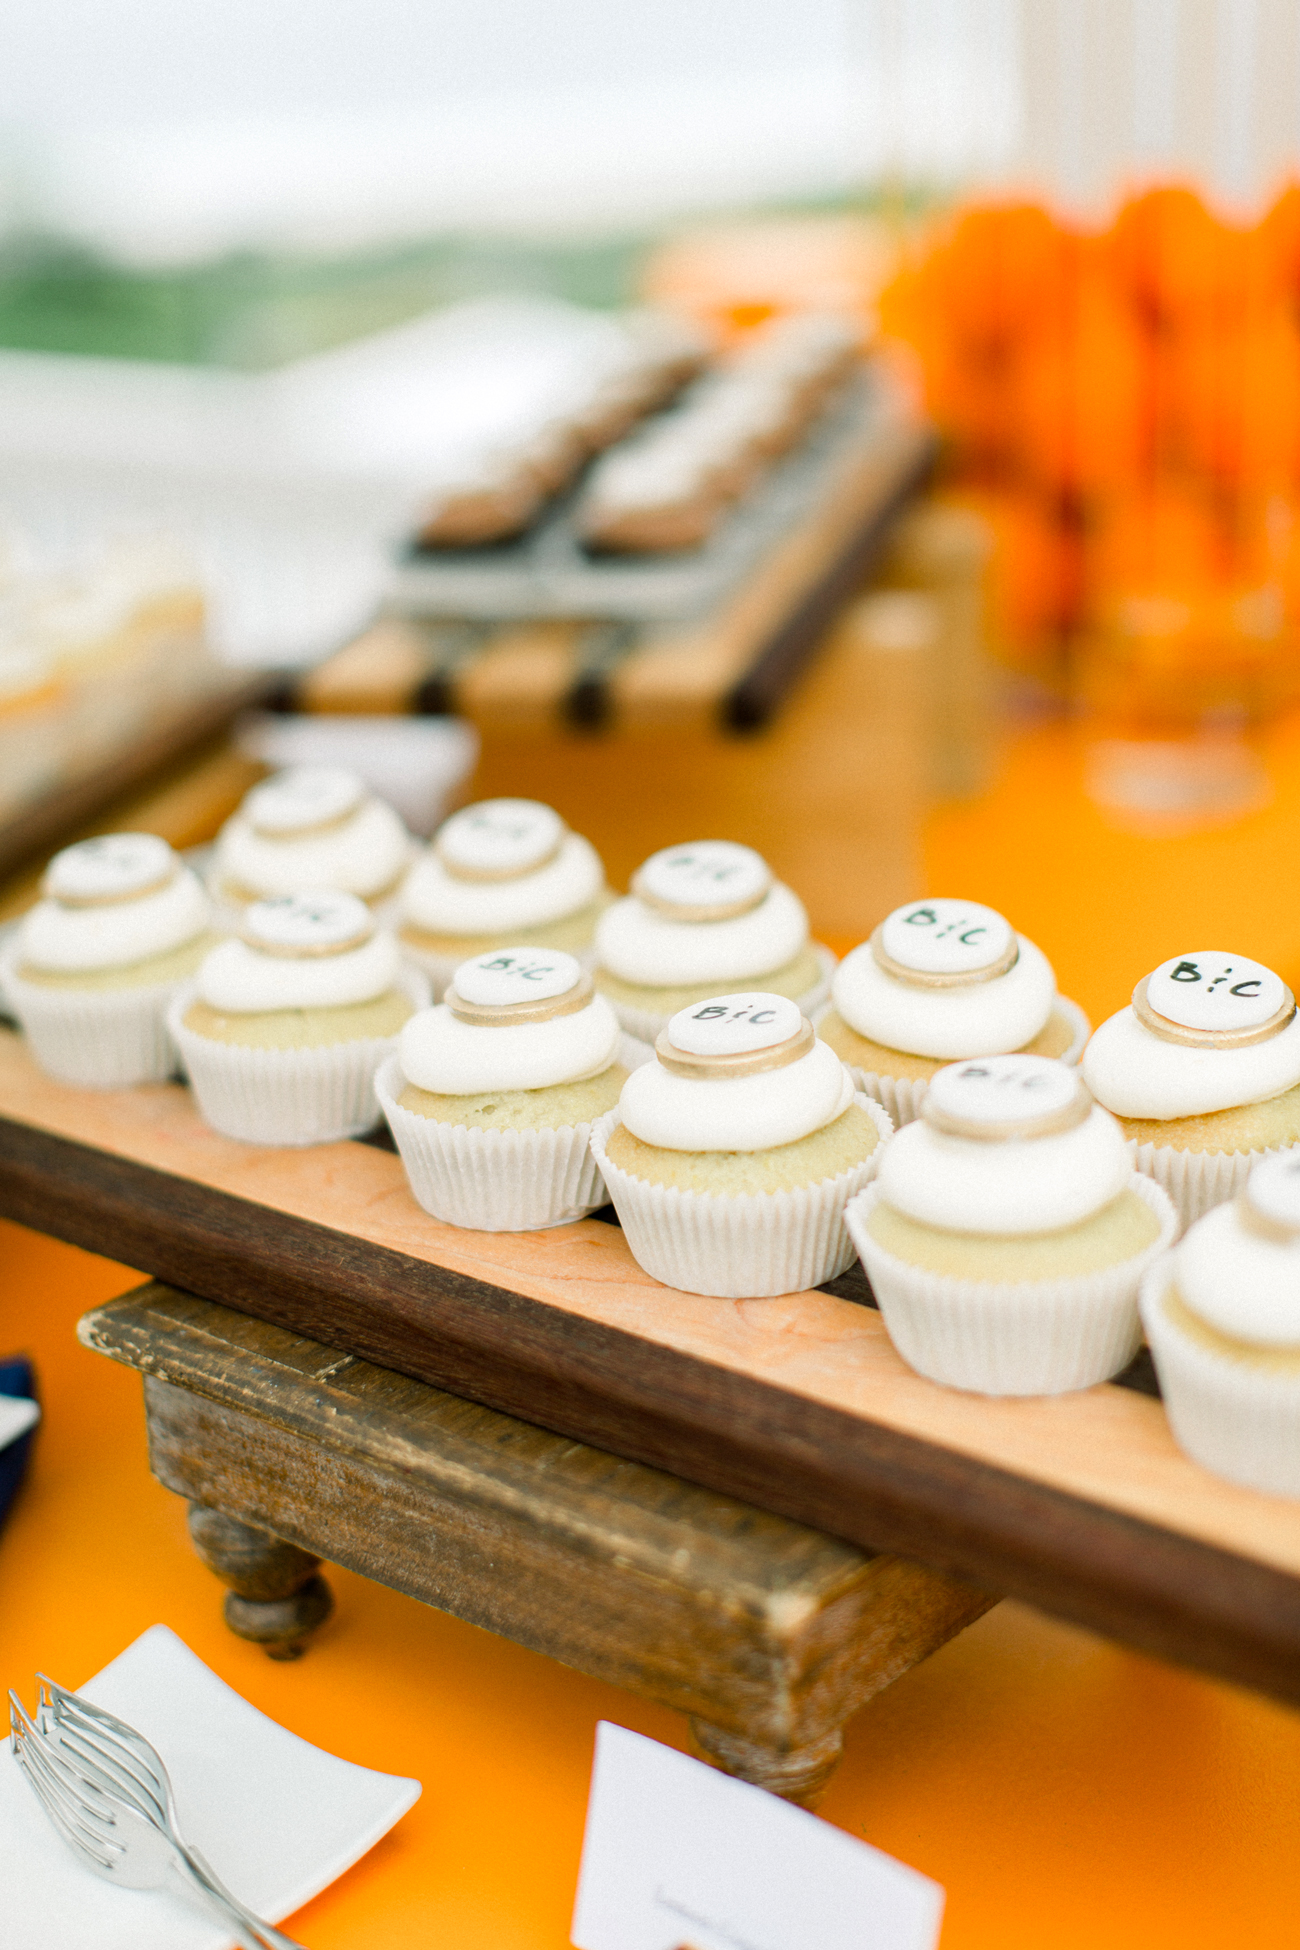 monogramed white frosted cupcakes on orange tabletop